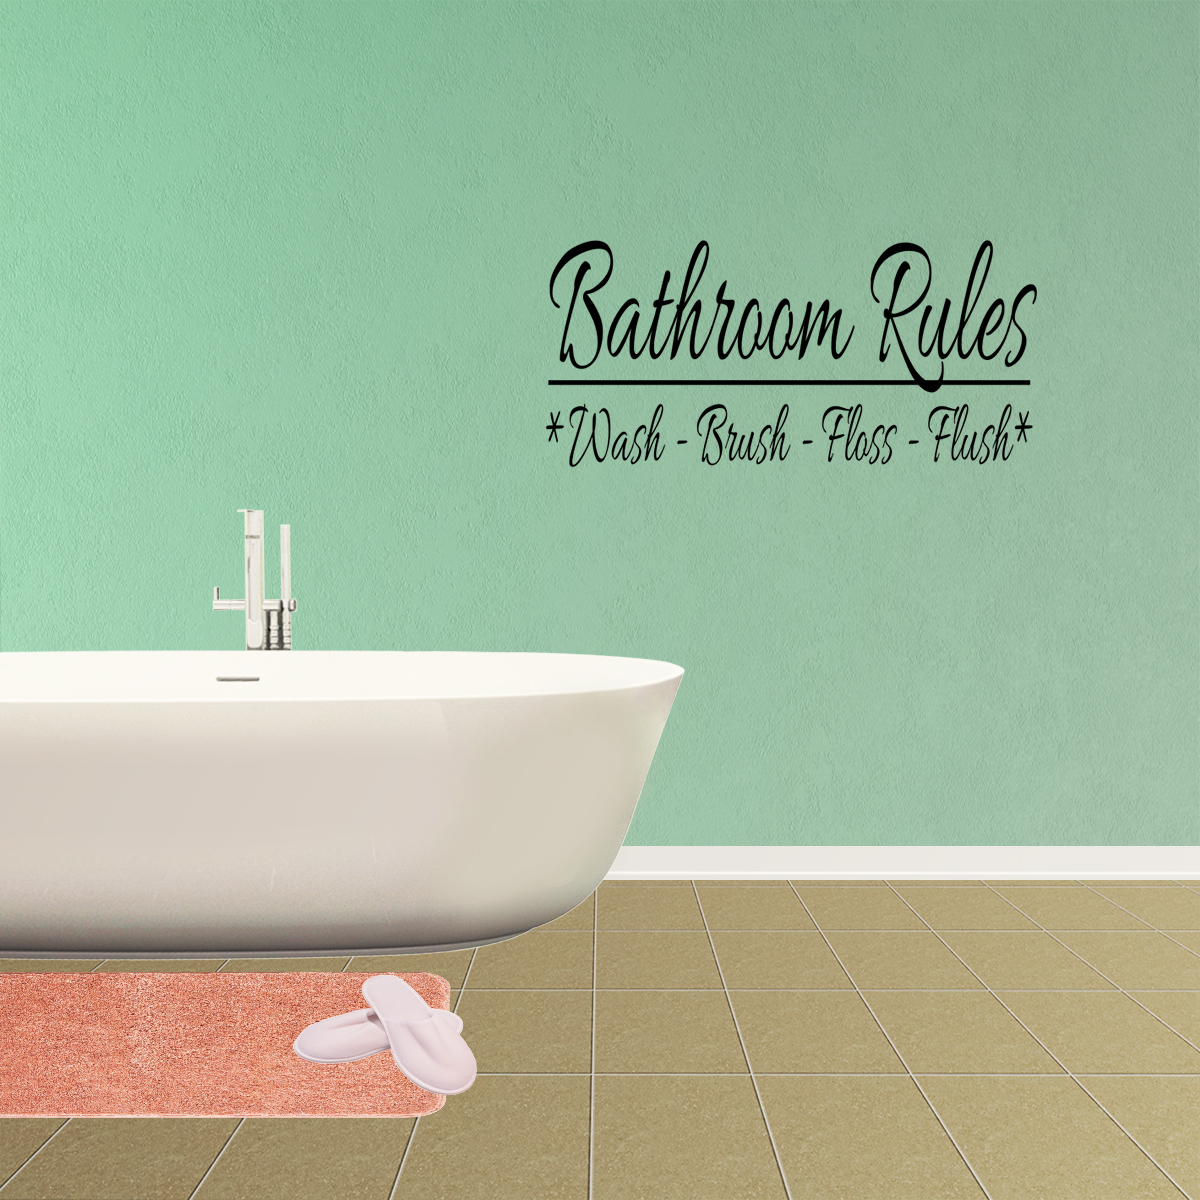 Bathroom Rules Monkey Vinyl Wall Decal Quotes Stickers Bath Decals Home Decor JR116